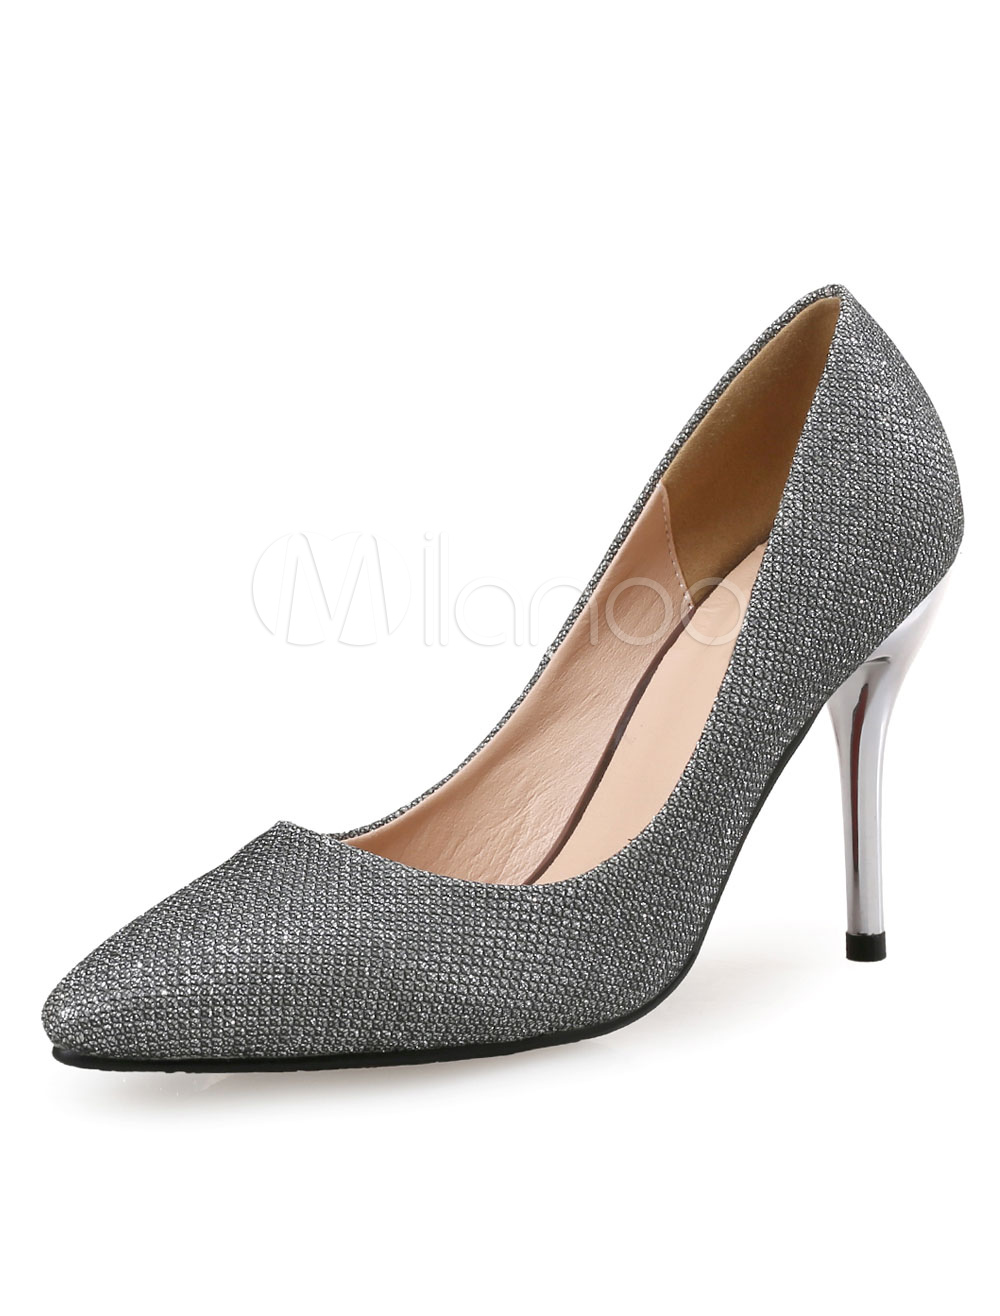 Buy Sequin Evening Shoes High Heel Silver Grey Pointed Toe Slip On Stiletto Heel Pumps for $33.24 in Milanoo store